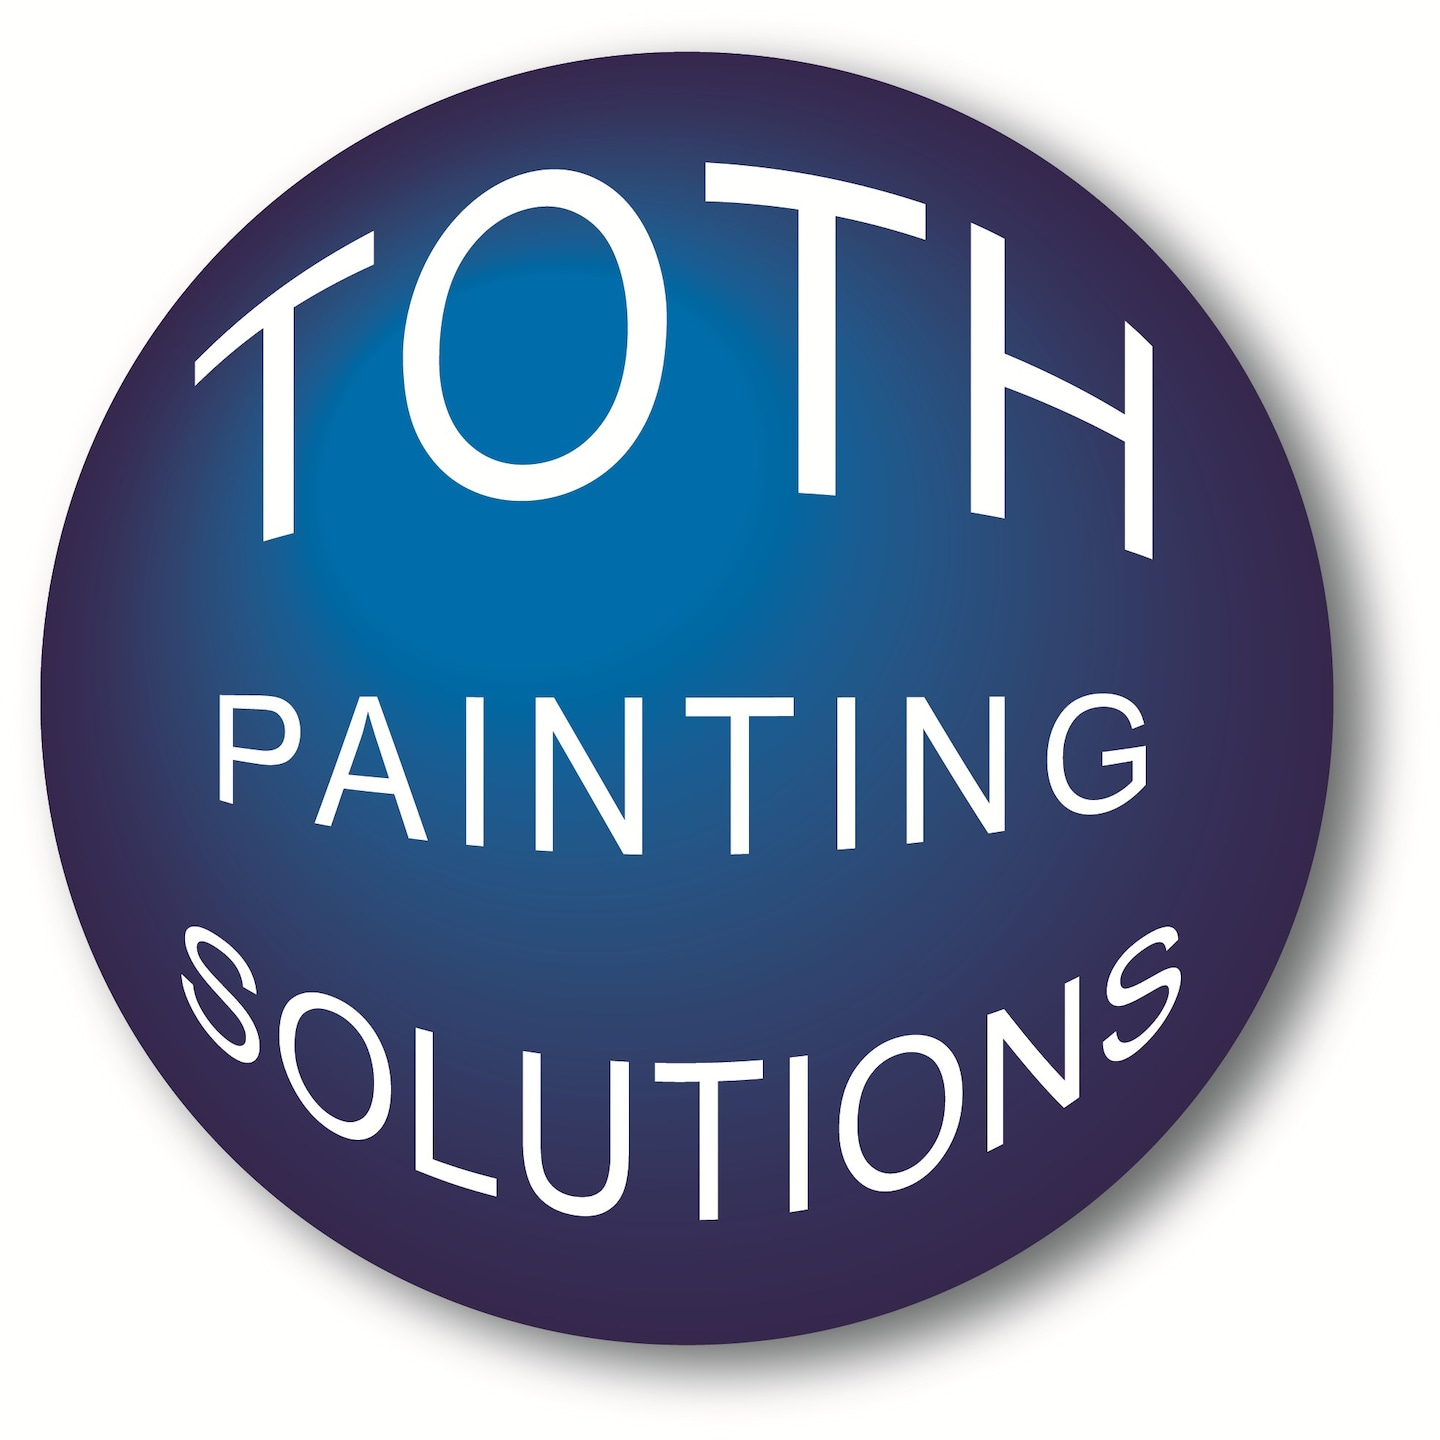 Toth Painting Solutions